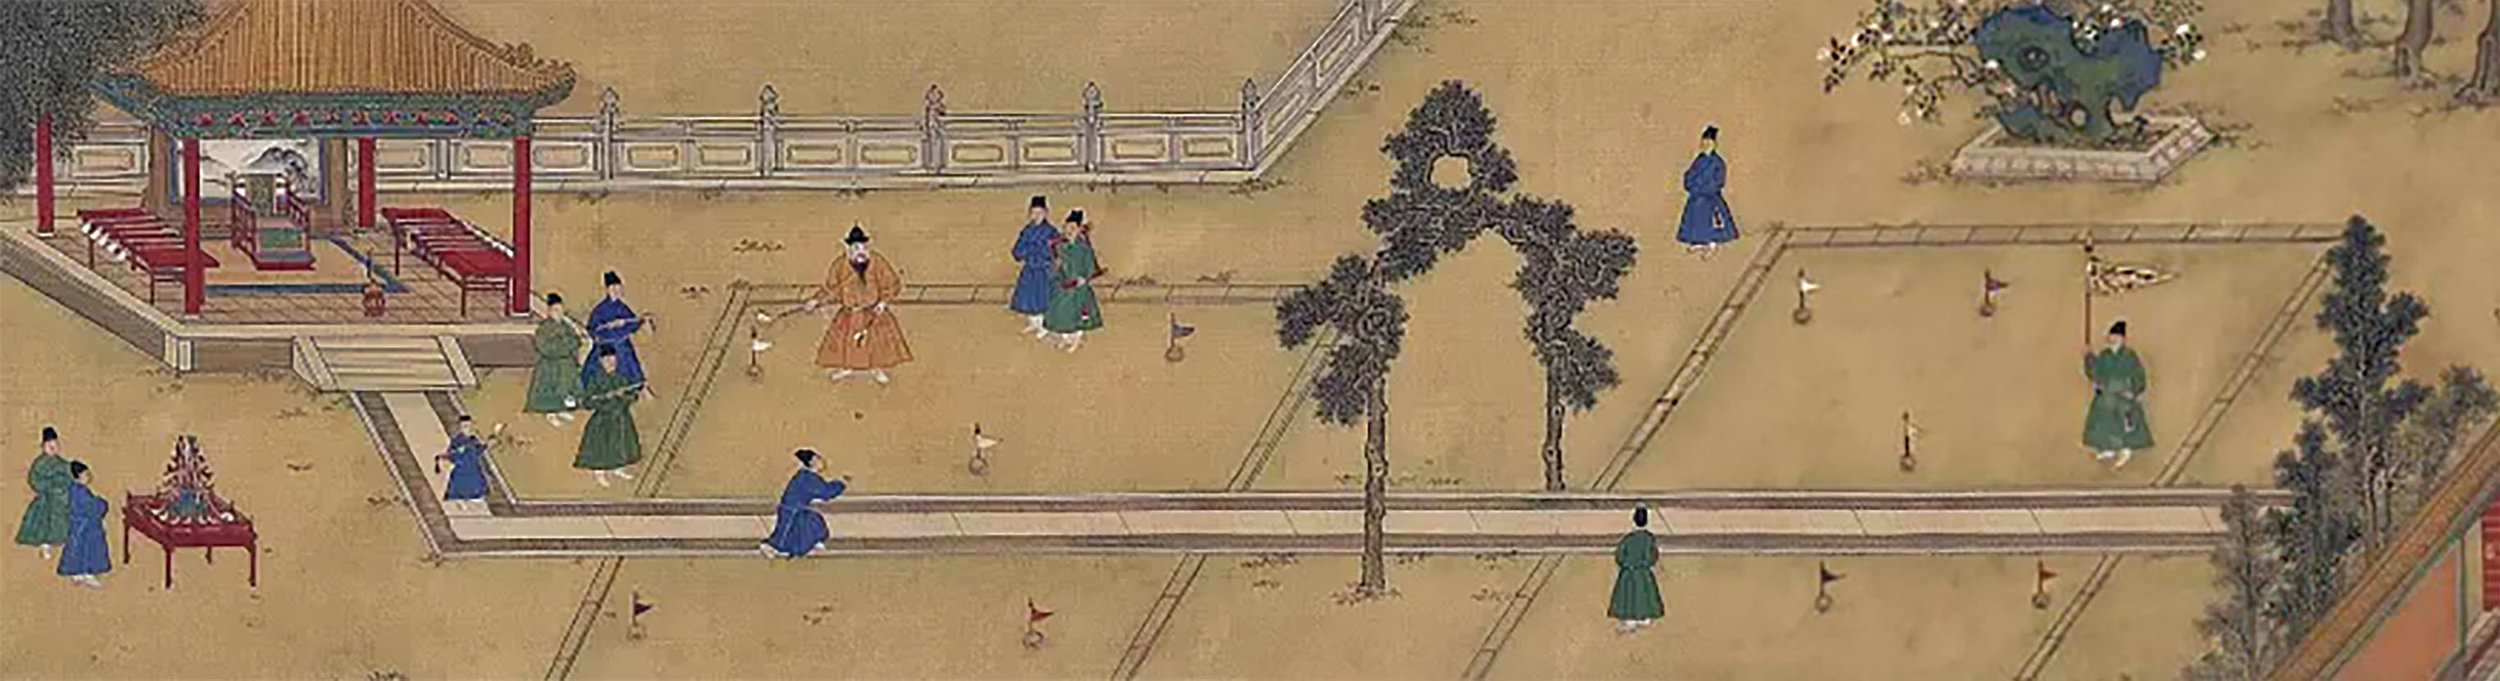 Emperor Xuanzong of the Ming Dynasty at Leisure , collected by The Palace Museum, portrays the emperor playing chuiwan